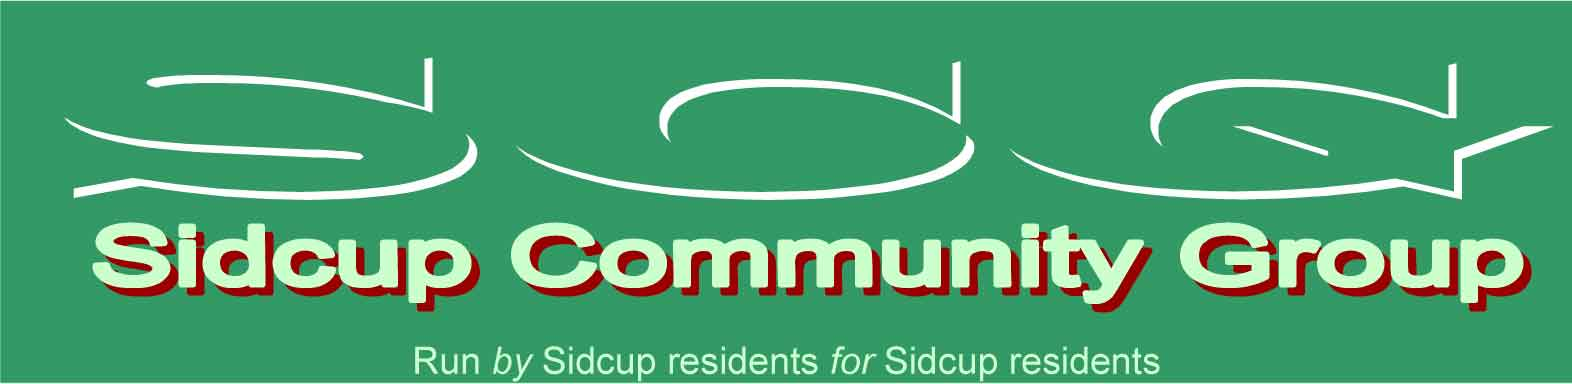 Sidcup Community Group